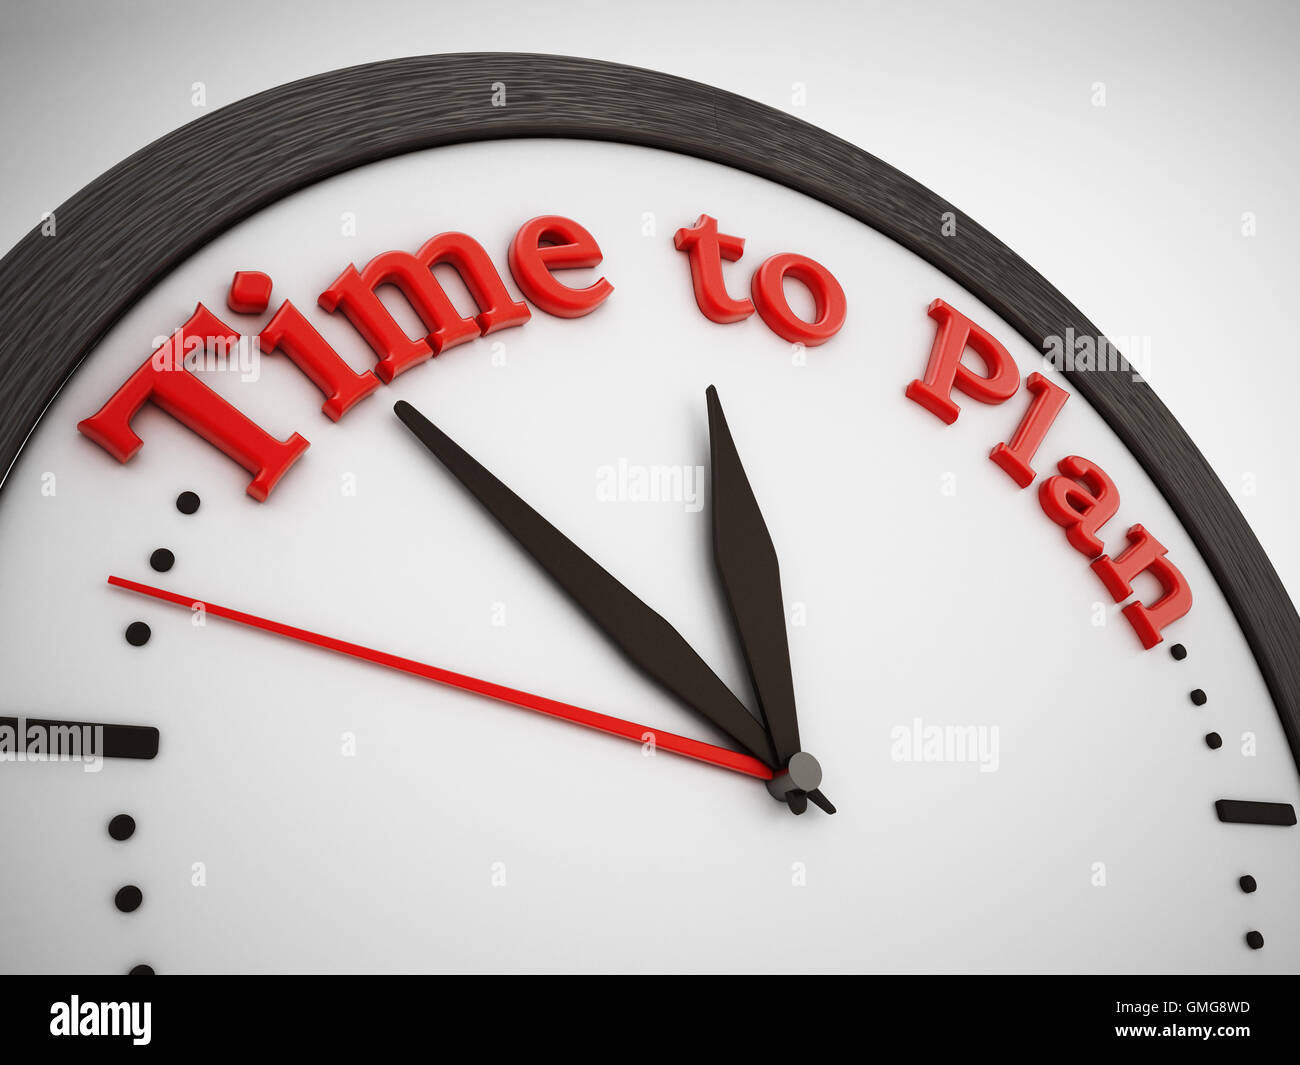 Time to plan sentence on the clock. 3D illustration. - Stock Image